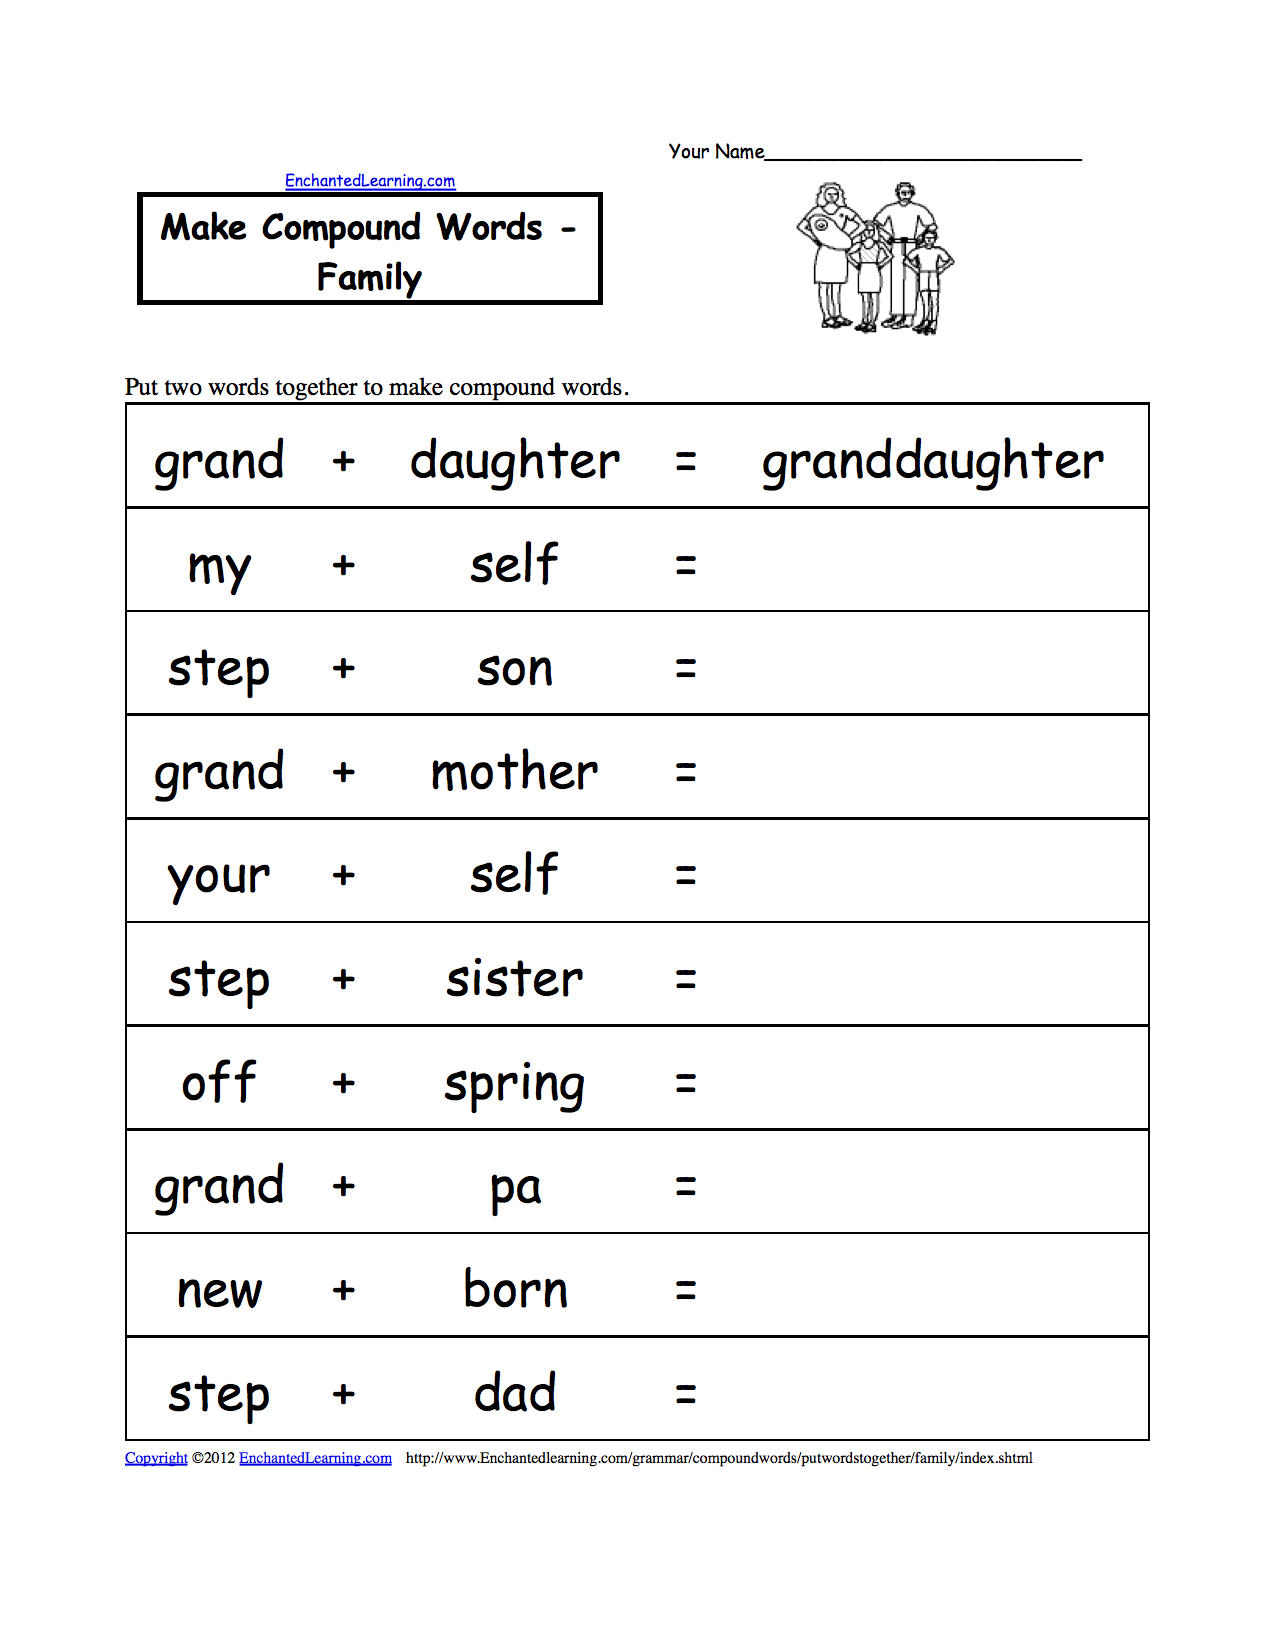 Proatmealus  Remarkable Make Compound Words Printable Worksheets Enchantedlearningcom With Inspiring Make Compound Words With Adorable Plurals And Possessives Worksheet Also Gas Laws Worksheets In Addition Practice Factoring Polynomials Worksheet And Th Grade Worksheets Free As Well As Finding Mean Worksheets Additionally Volume Of Prisms Worksheets From Enchantedlearningcom With Proatmealus  Inspiring Make Compound Words Printable Worksheets Enchantedlearningcom With Adorable Make Compound Words And Remarkable Plurals And Possessives Worksheet Also Gas Laws Worksheets In Addition Practice Factoring Polynomials Worksheet From Enchantedlearningcom